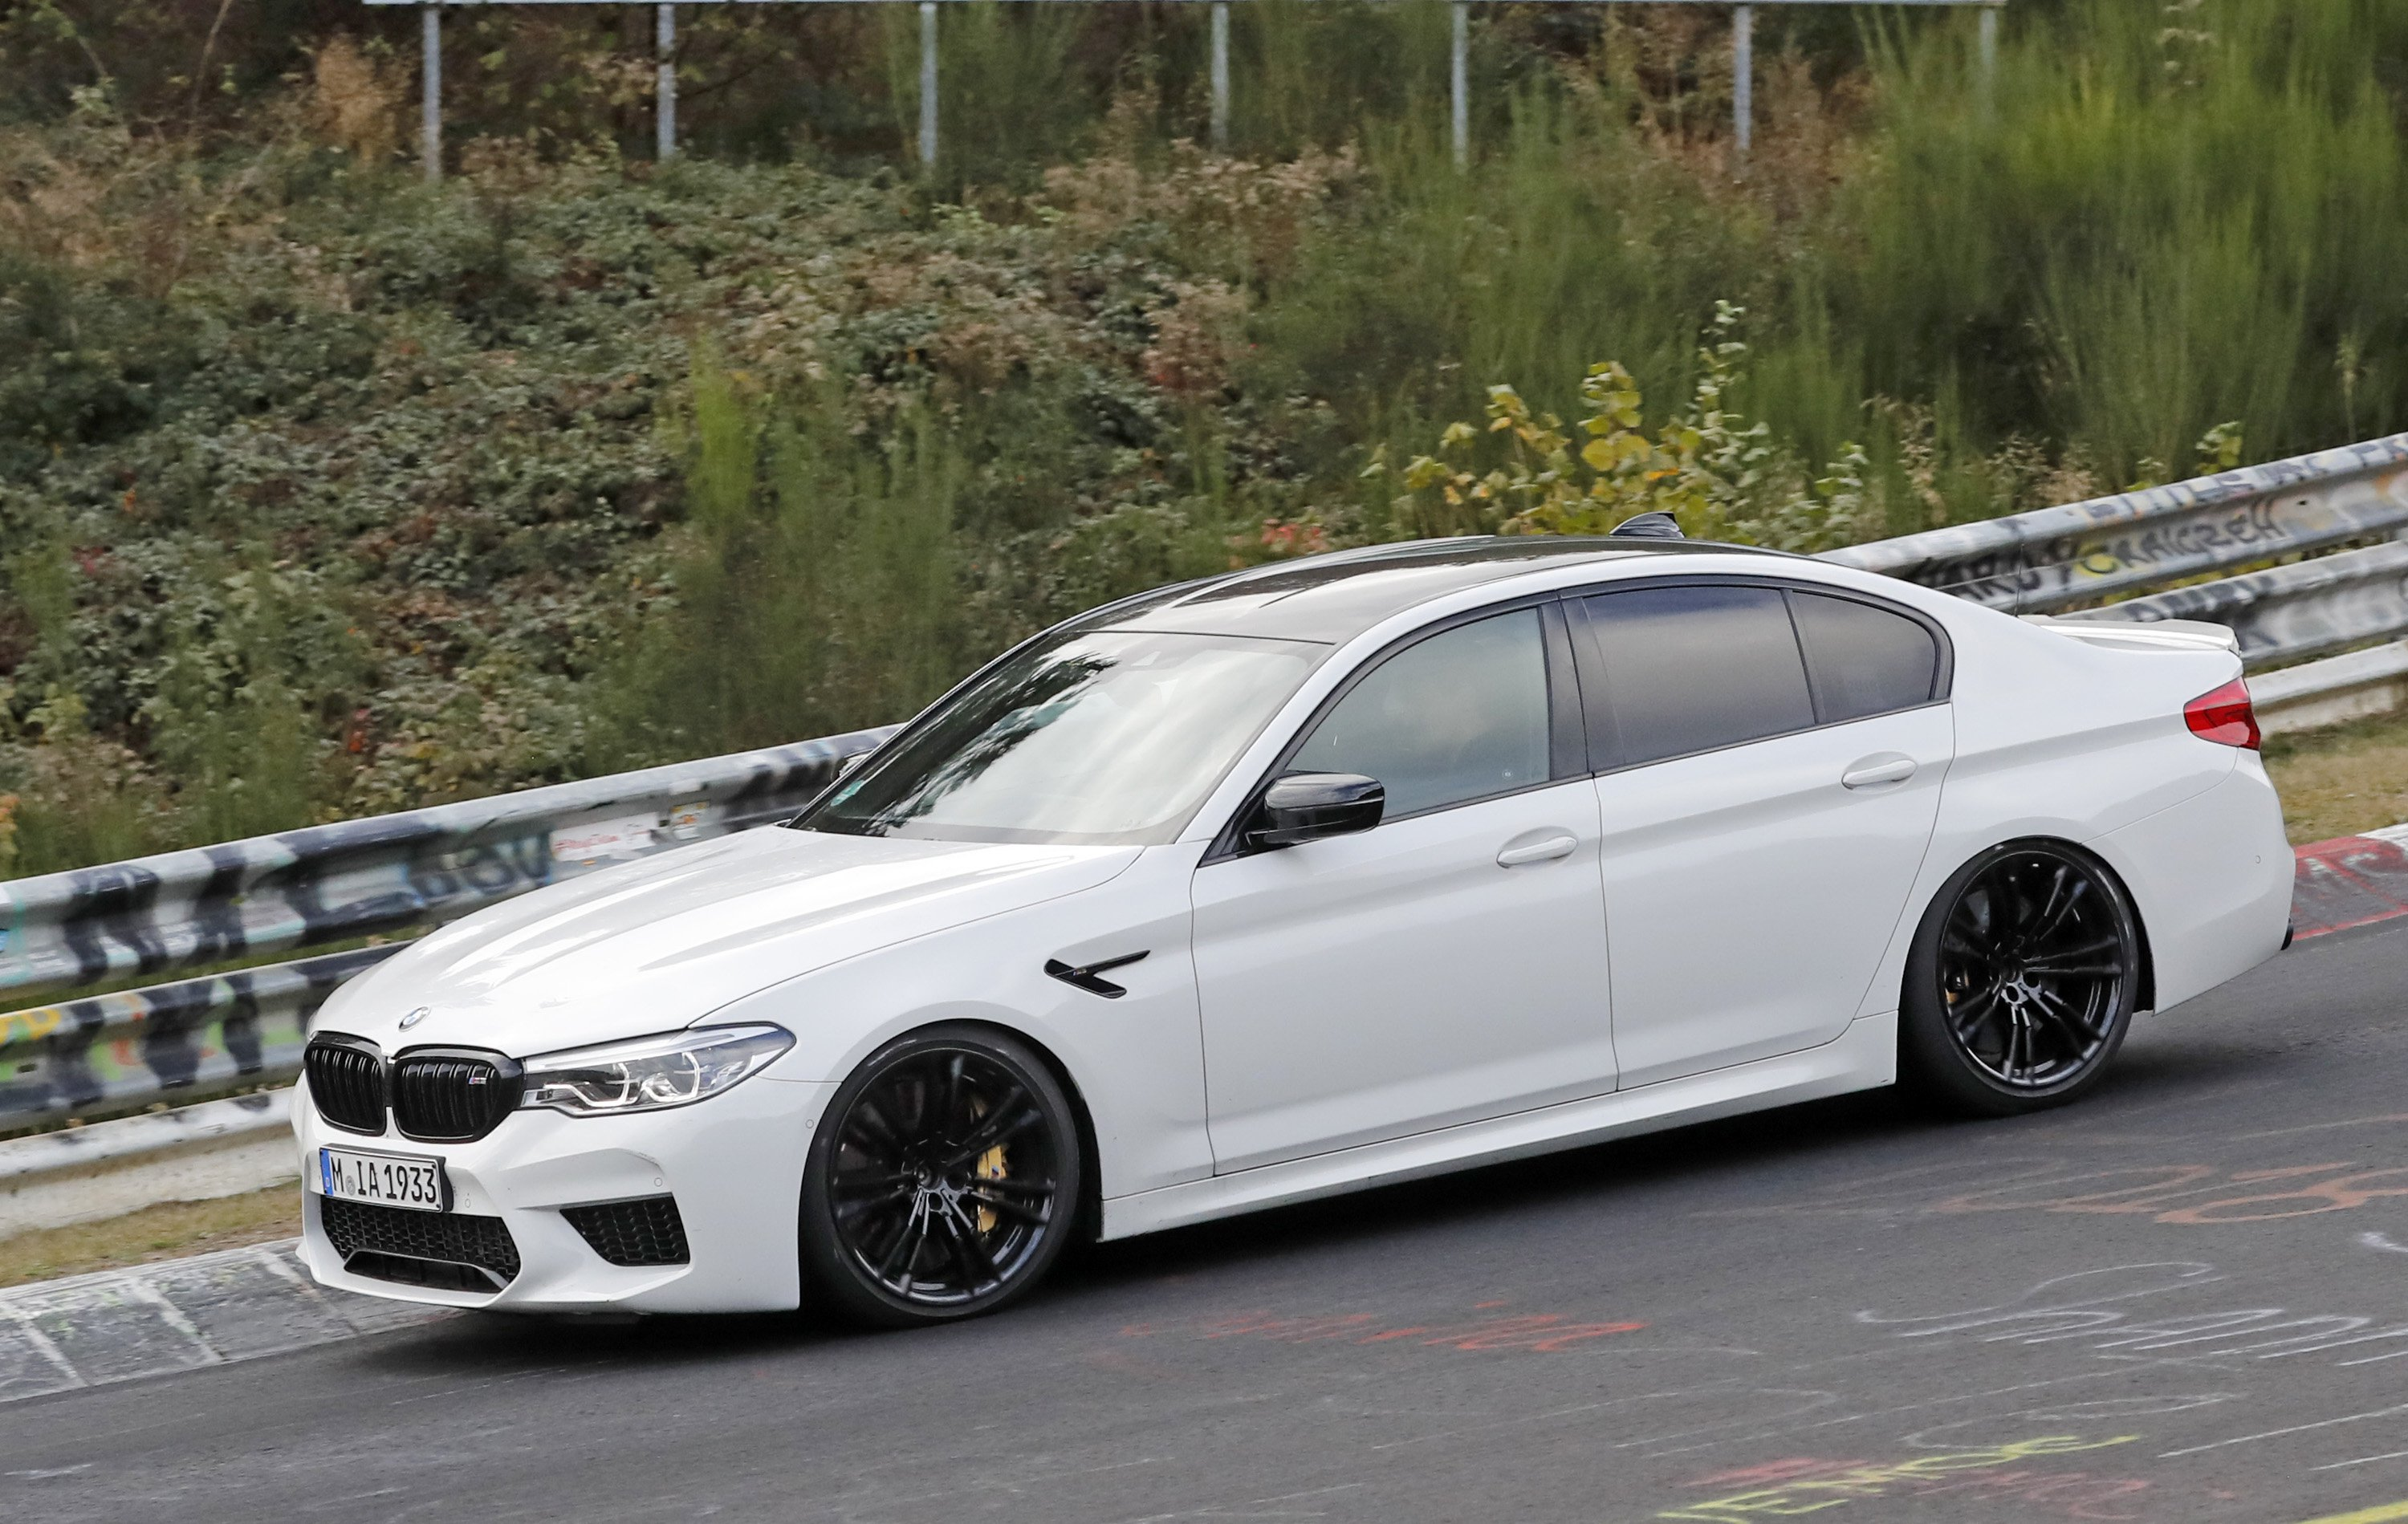 52 The 2020 BMW M5 First Drive